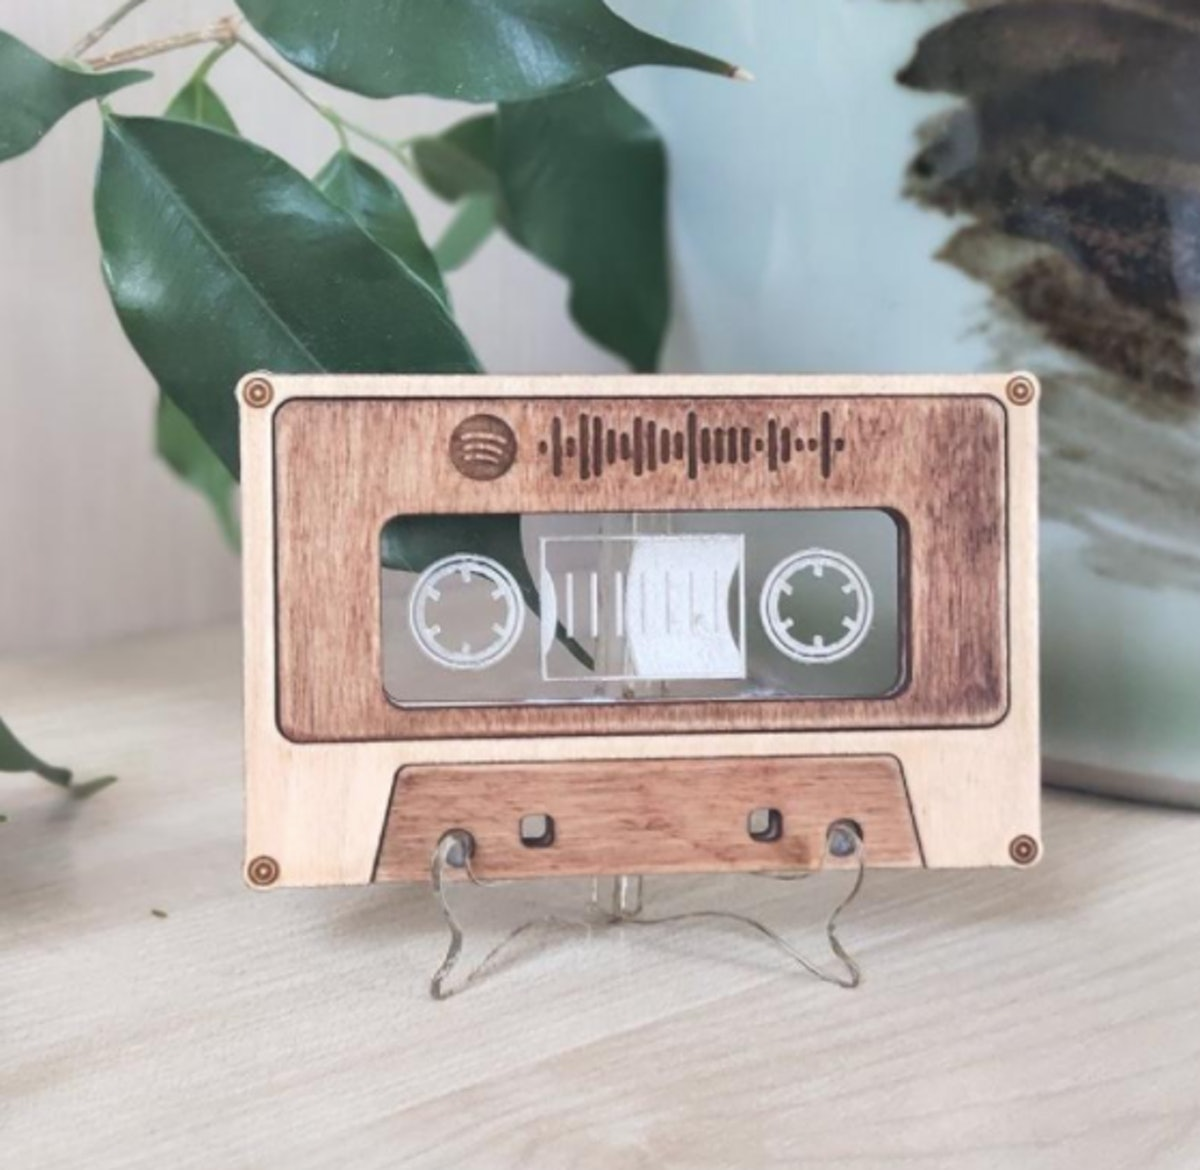 Vintage cassette with Spotify code Scannable Spotify link QR code Spotify code (song or playlist)